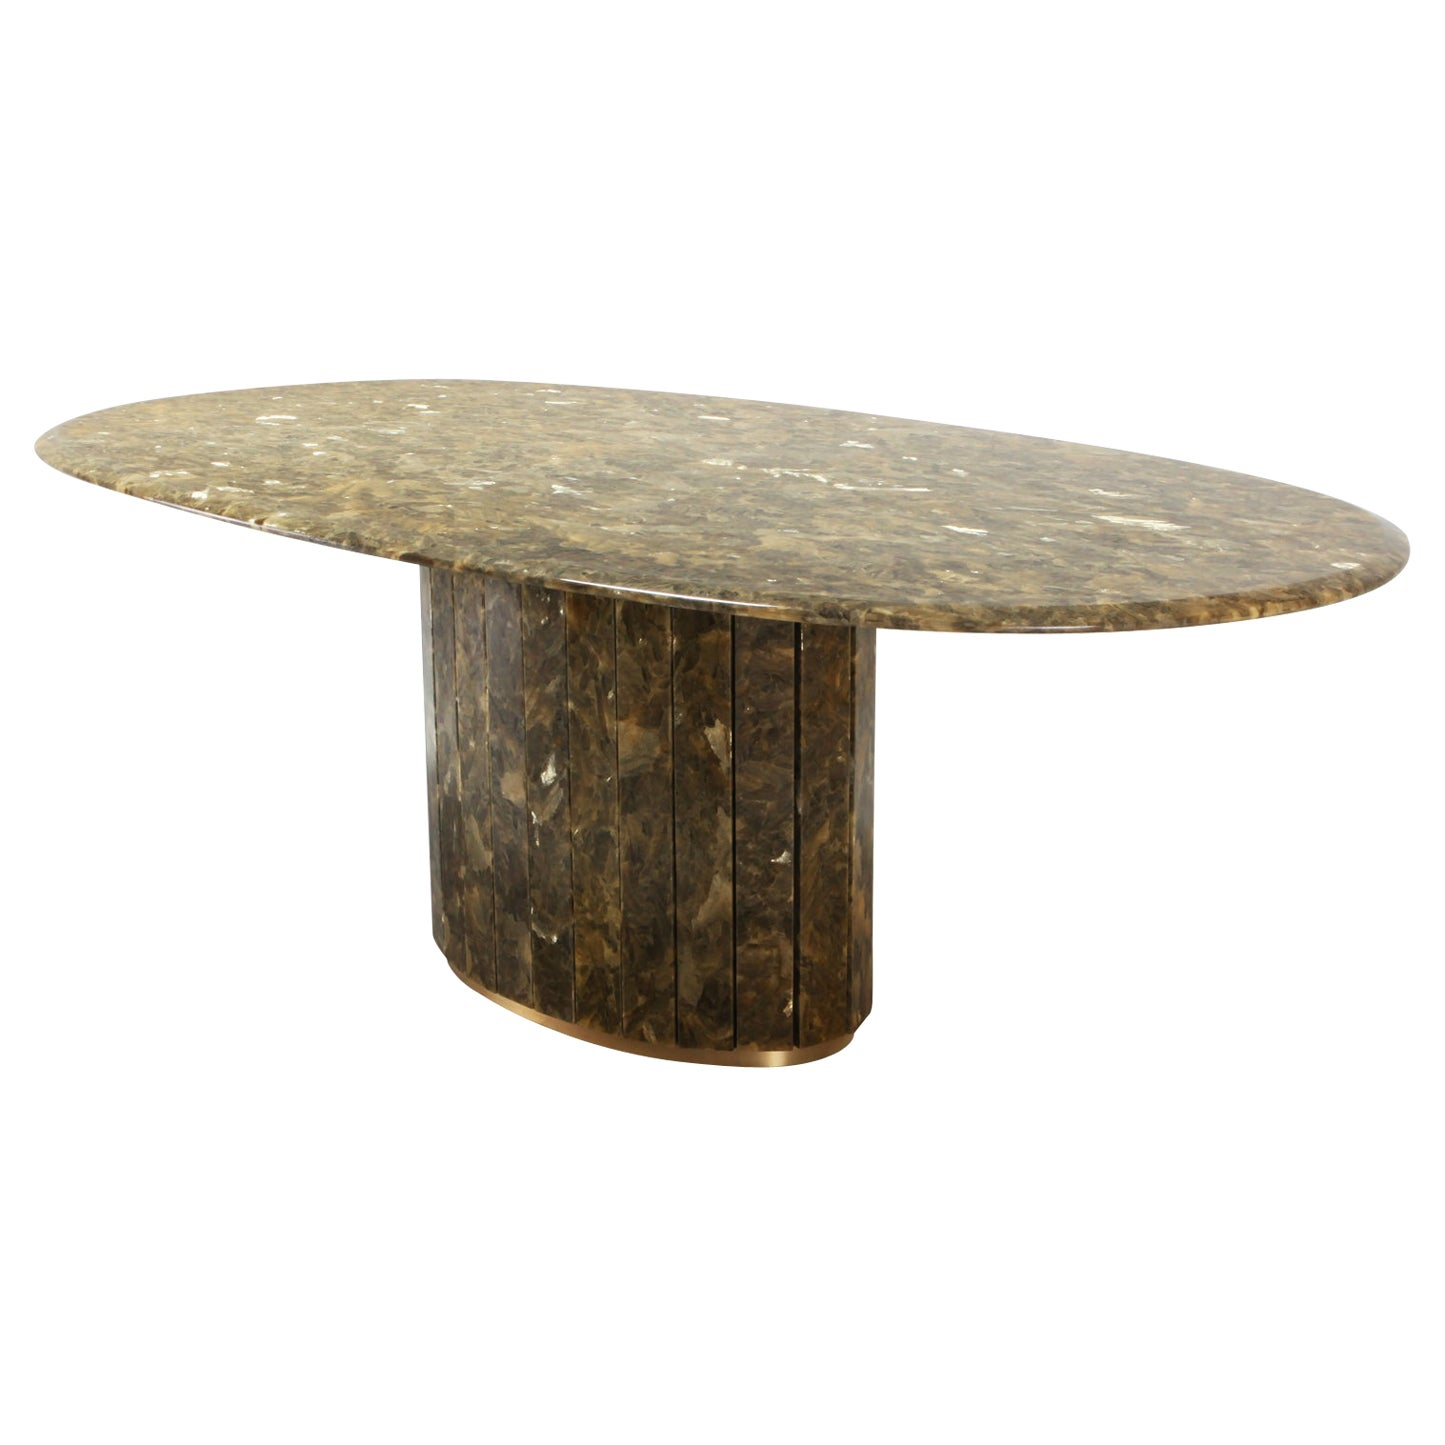 Onyx and Gold Leaf Marble Dining Table by Maison Charles